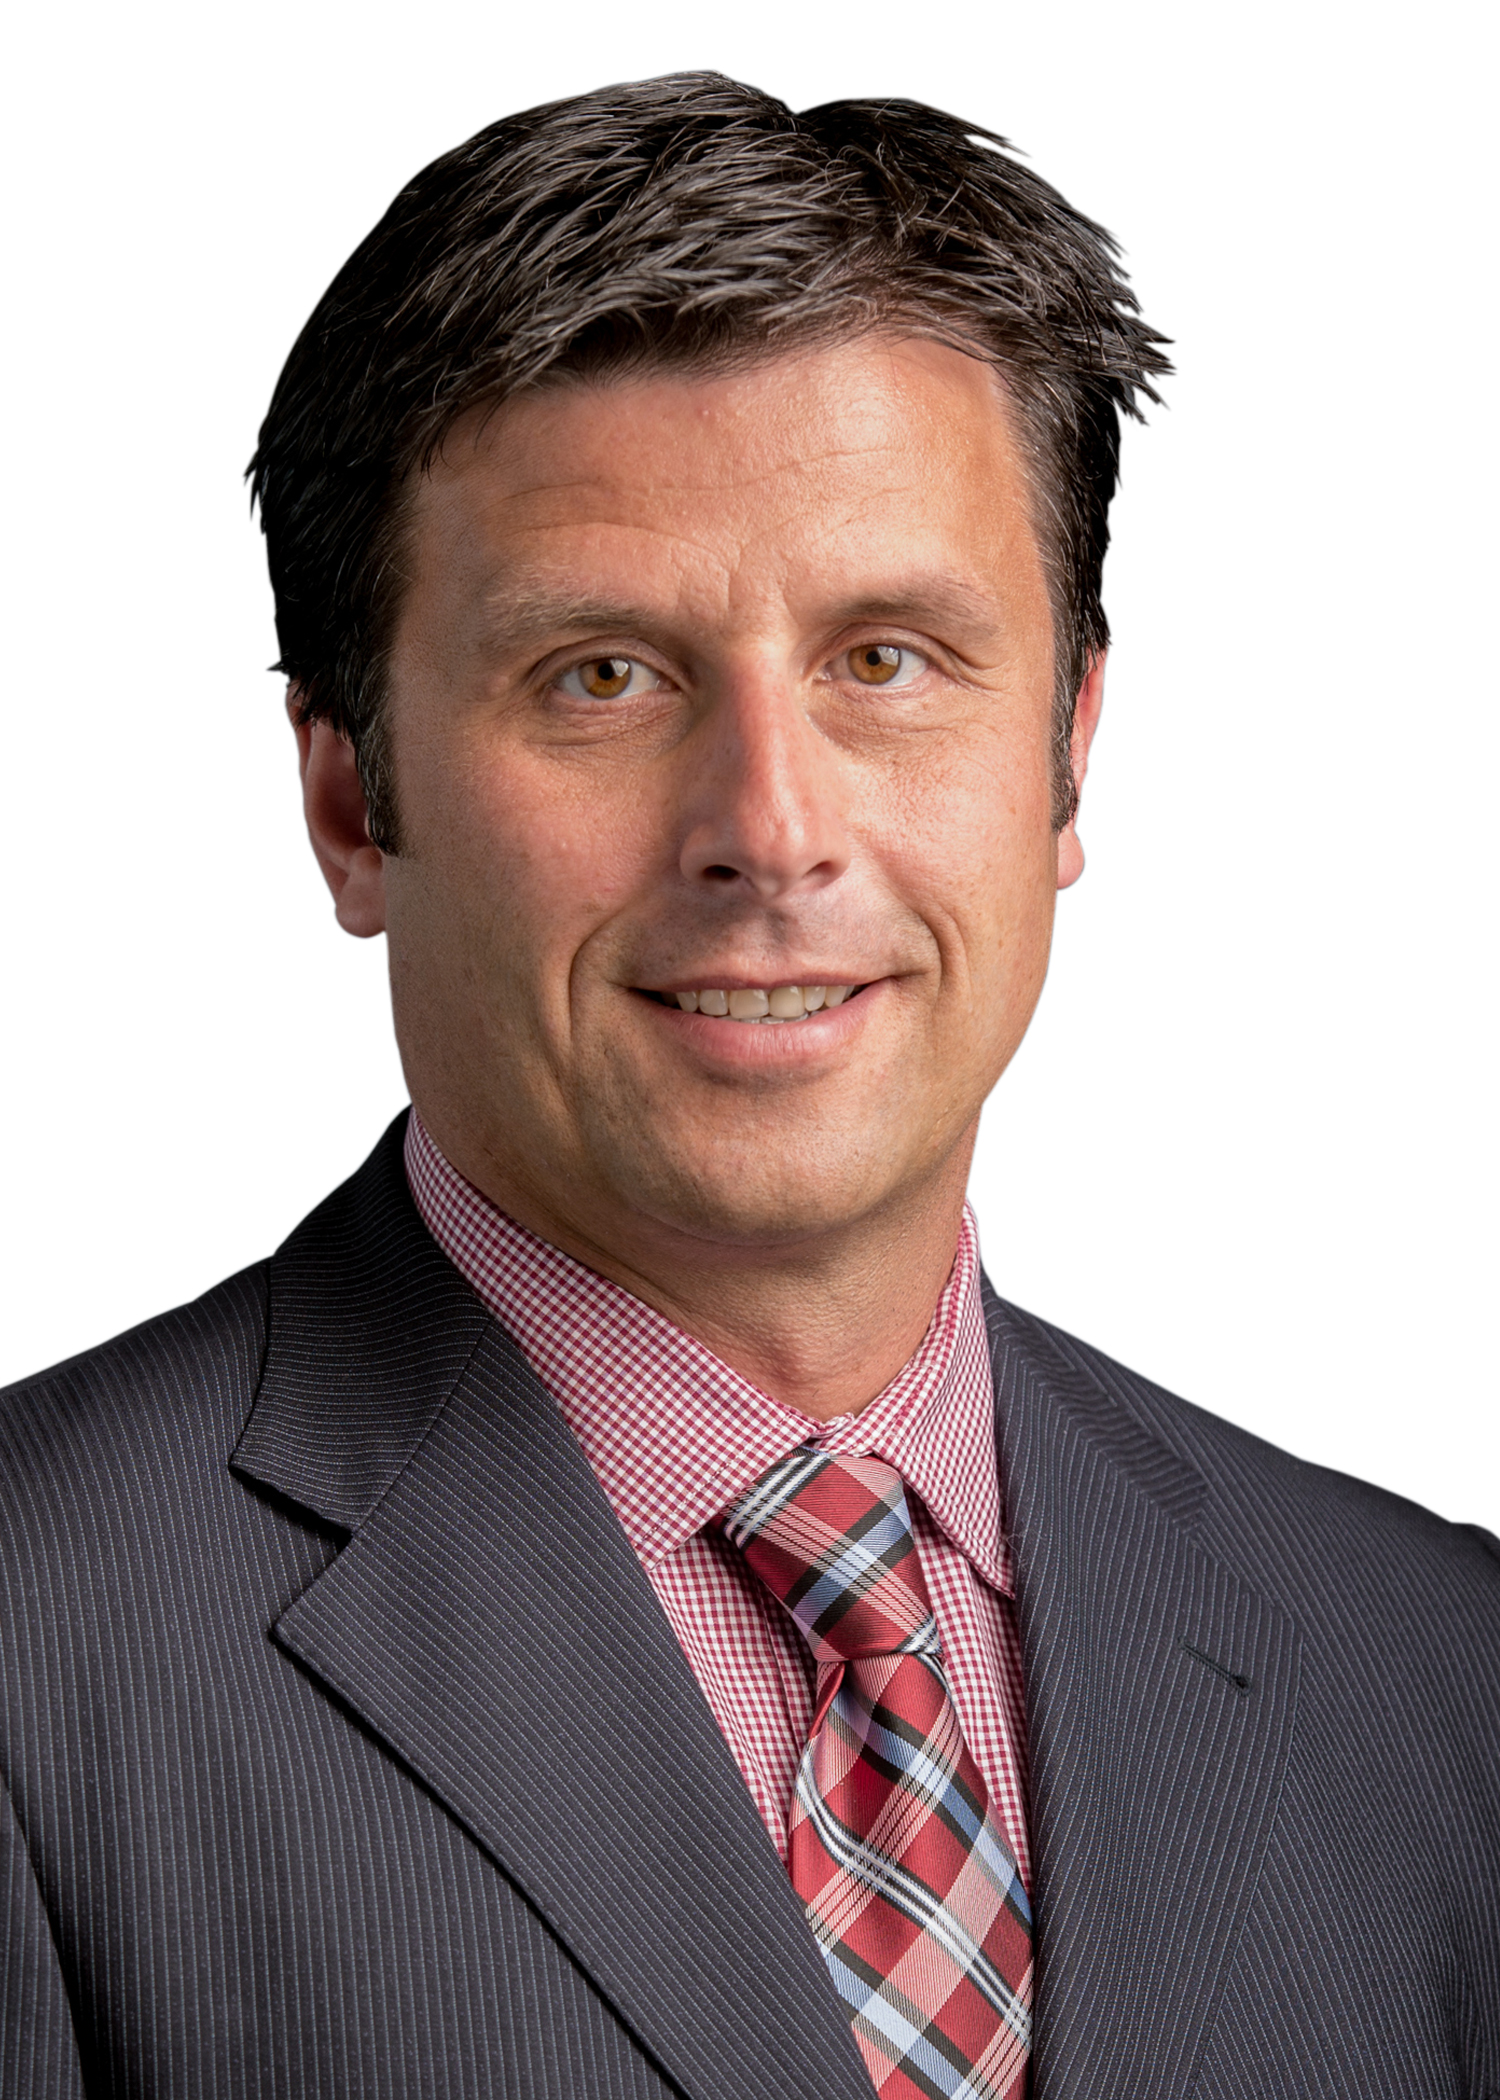 Blaine Shewchuk, Senior Vice-President IGM Financial Inc.